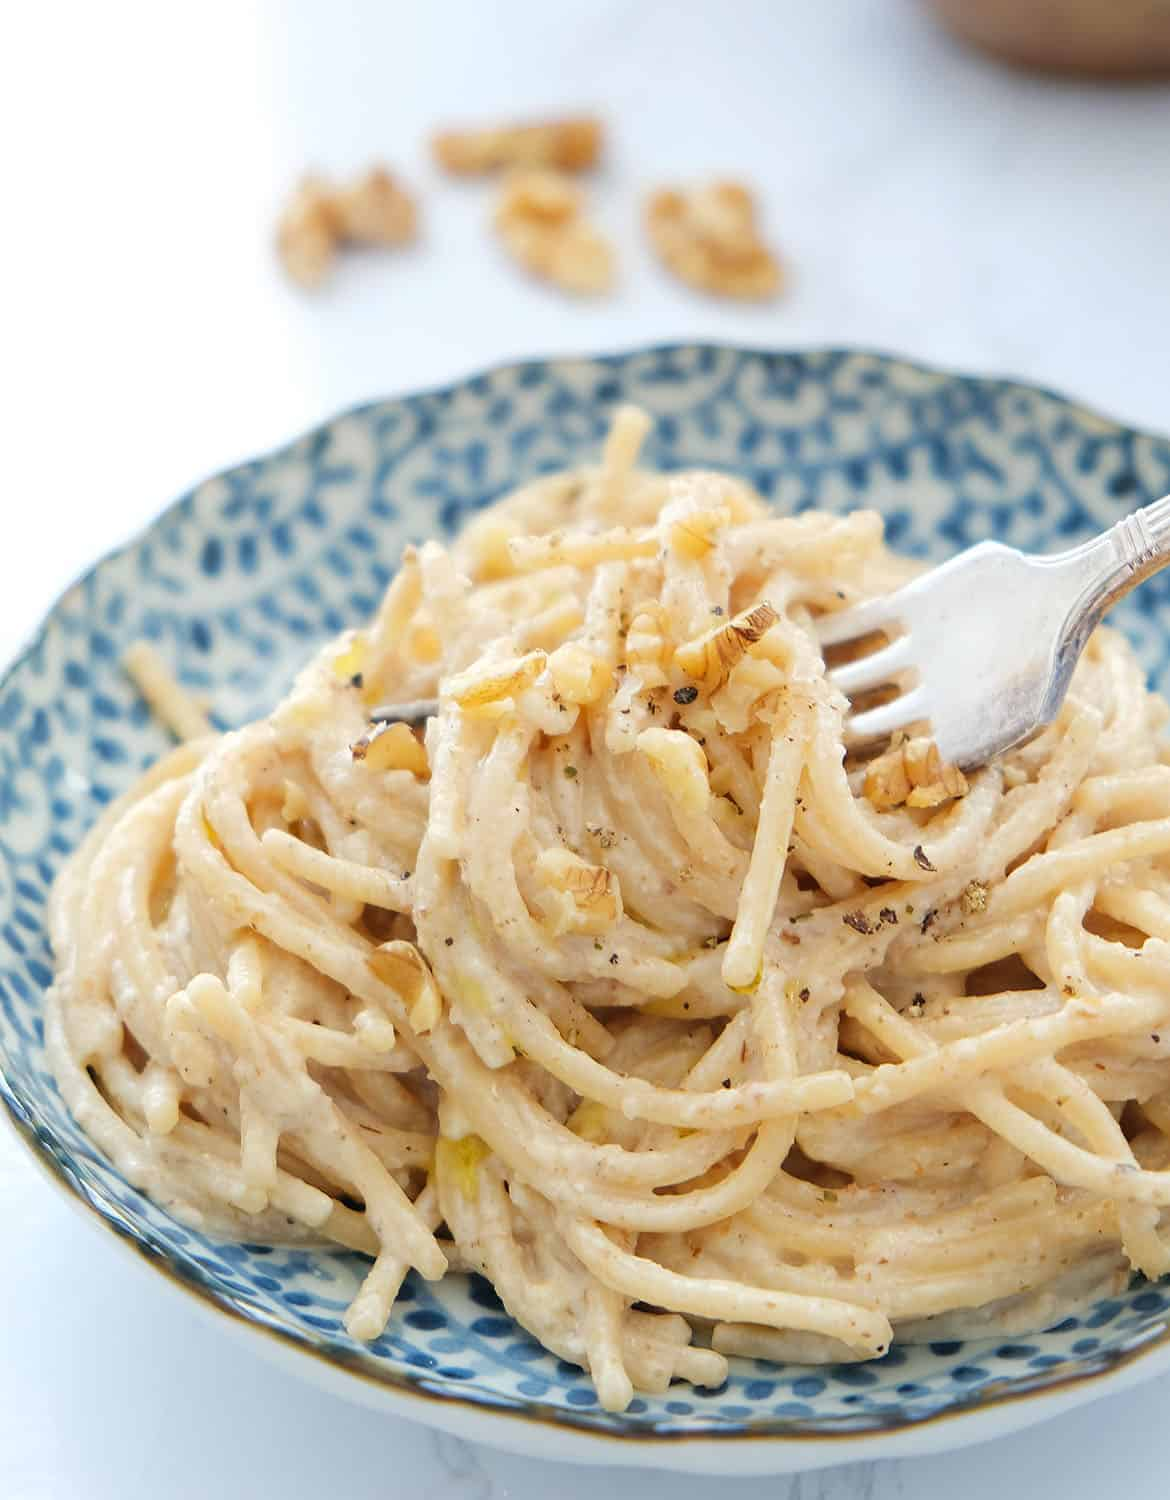 Easy spaghetti with walnut sauce and chopped walnuts in a blue bowl with a fork.